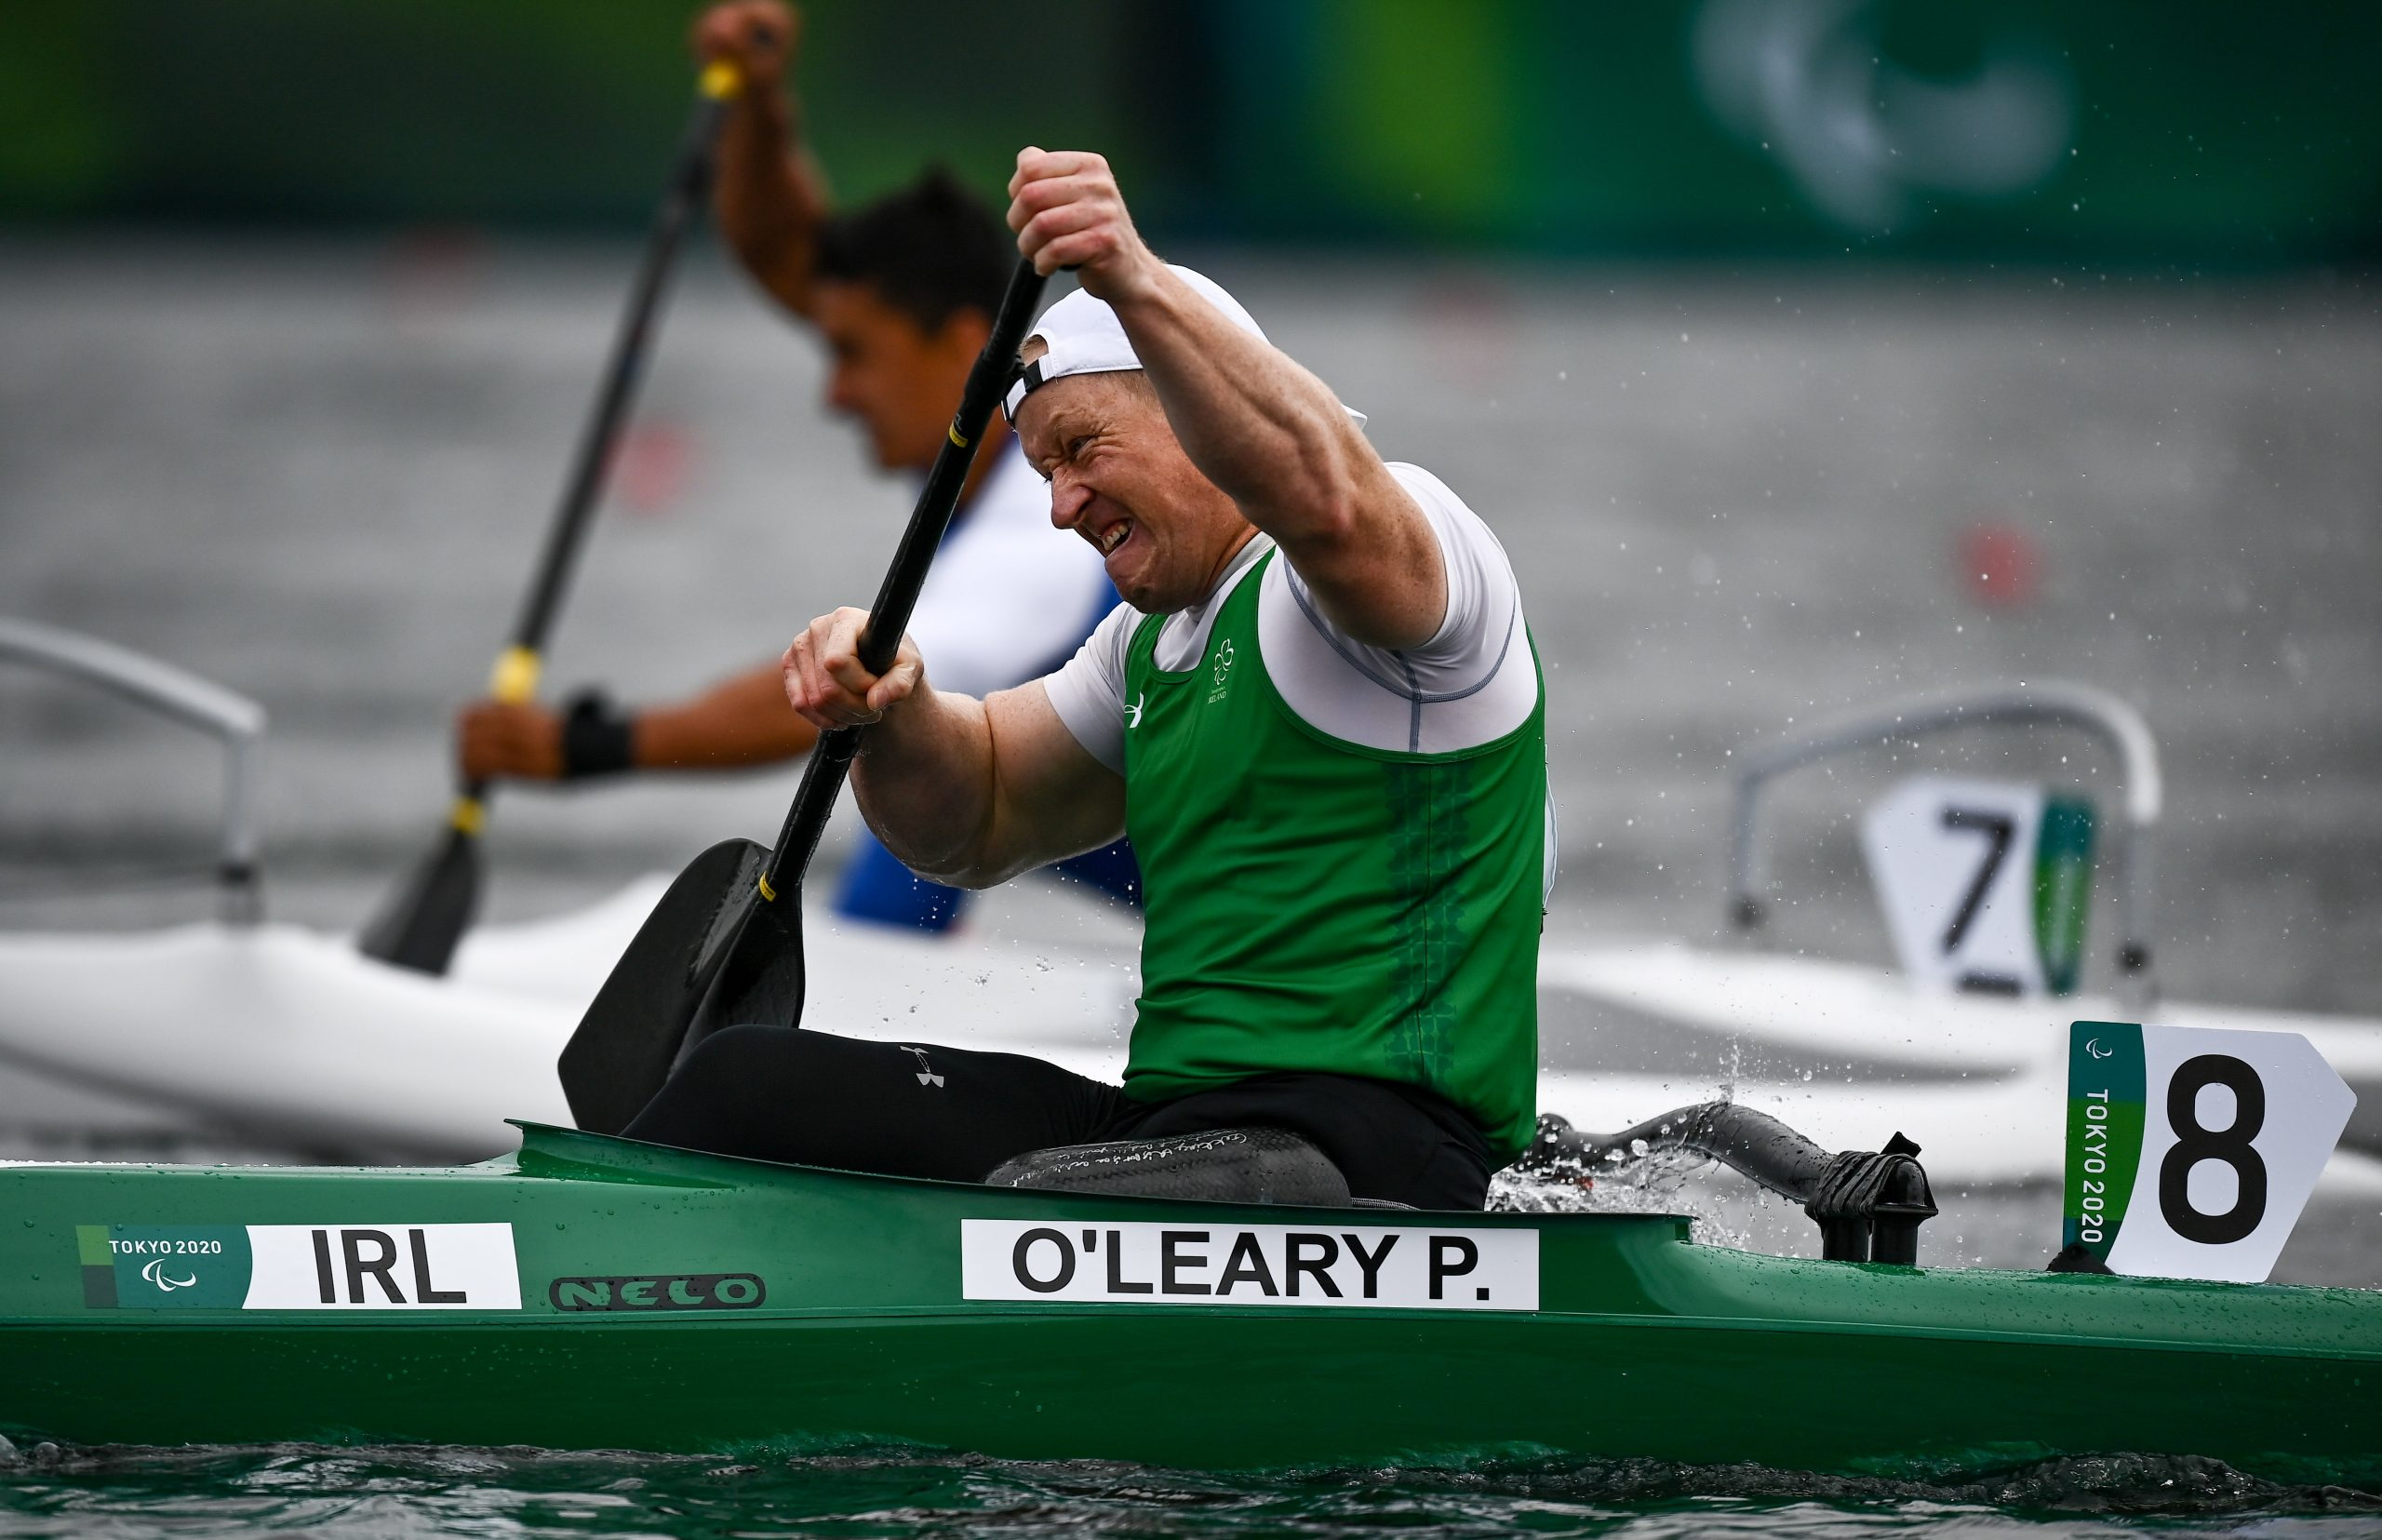 4 September 2021; Patrick O'Leary of Ireland competing in the Men's VL3 200 metre sprint A final at the Sea Forest Waterway on day eleven during the Tokyo 2020 Paralympic Games in Tokyo, Japan. Photo by David Fitzgerald/Sportsfile  *** NO REPRODUCTION FEE ***